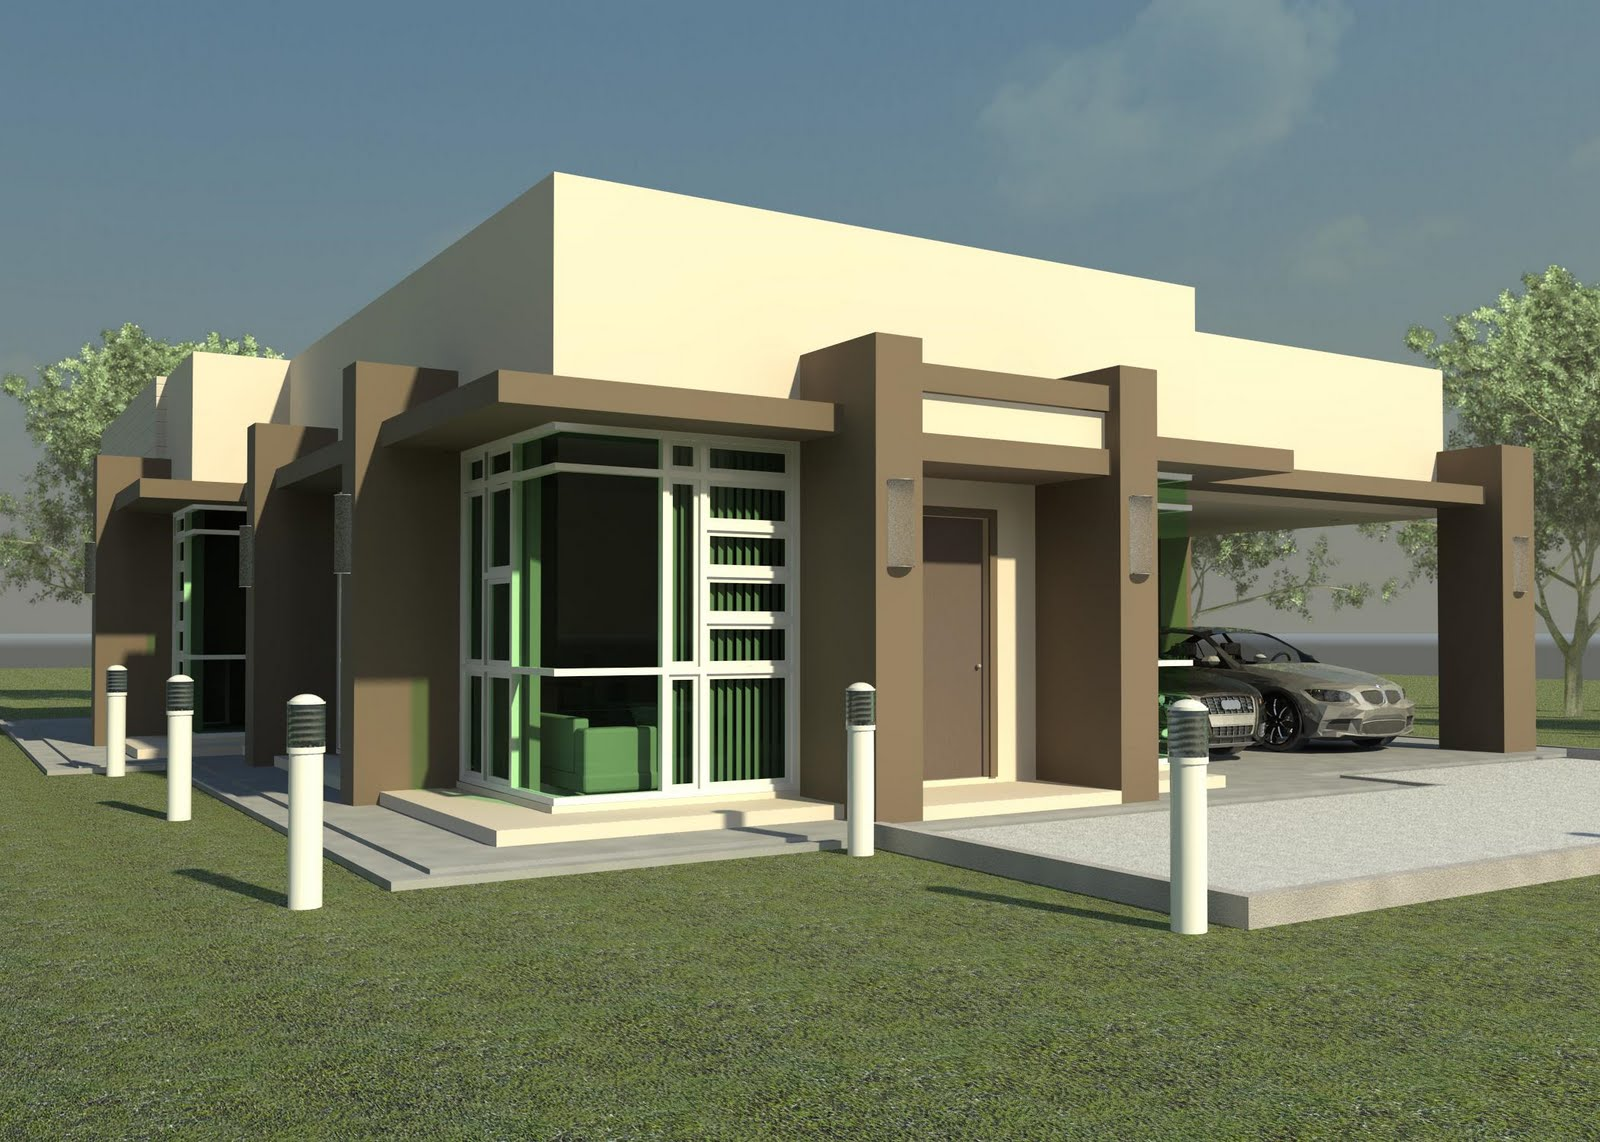 New home designs latest modern small homes designs exterior for Latest modern house plans